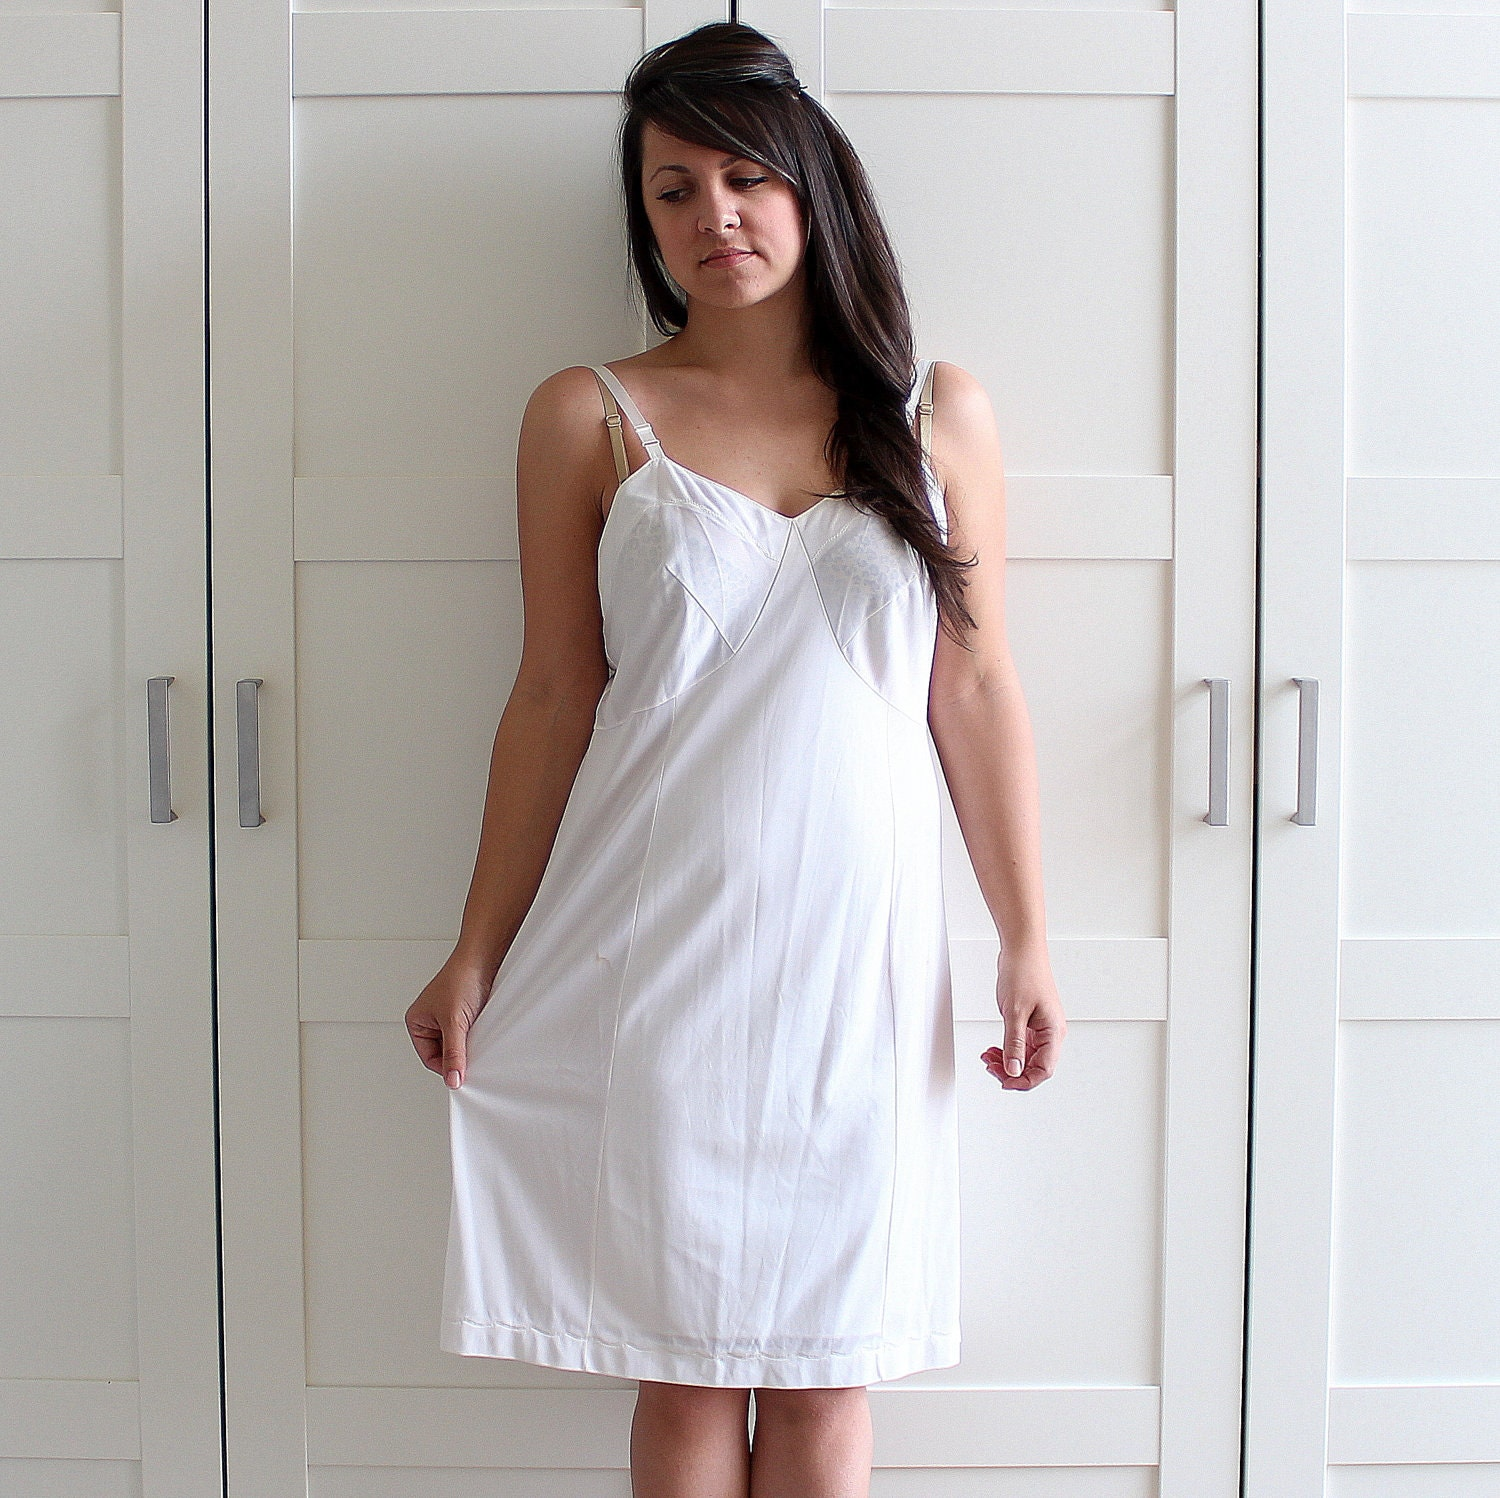 Vintage 1960s Lingerie White Slip Half Slip Dress Bridal